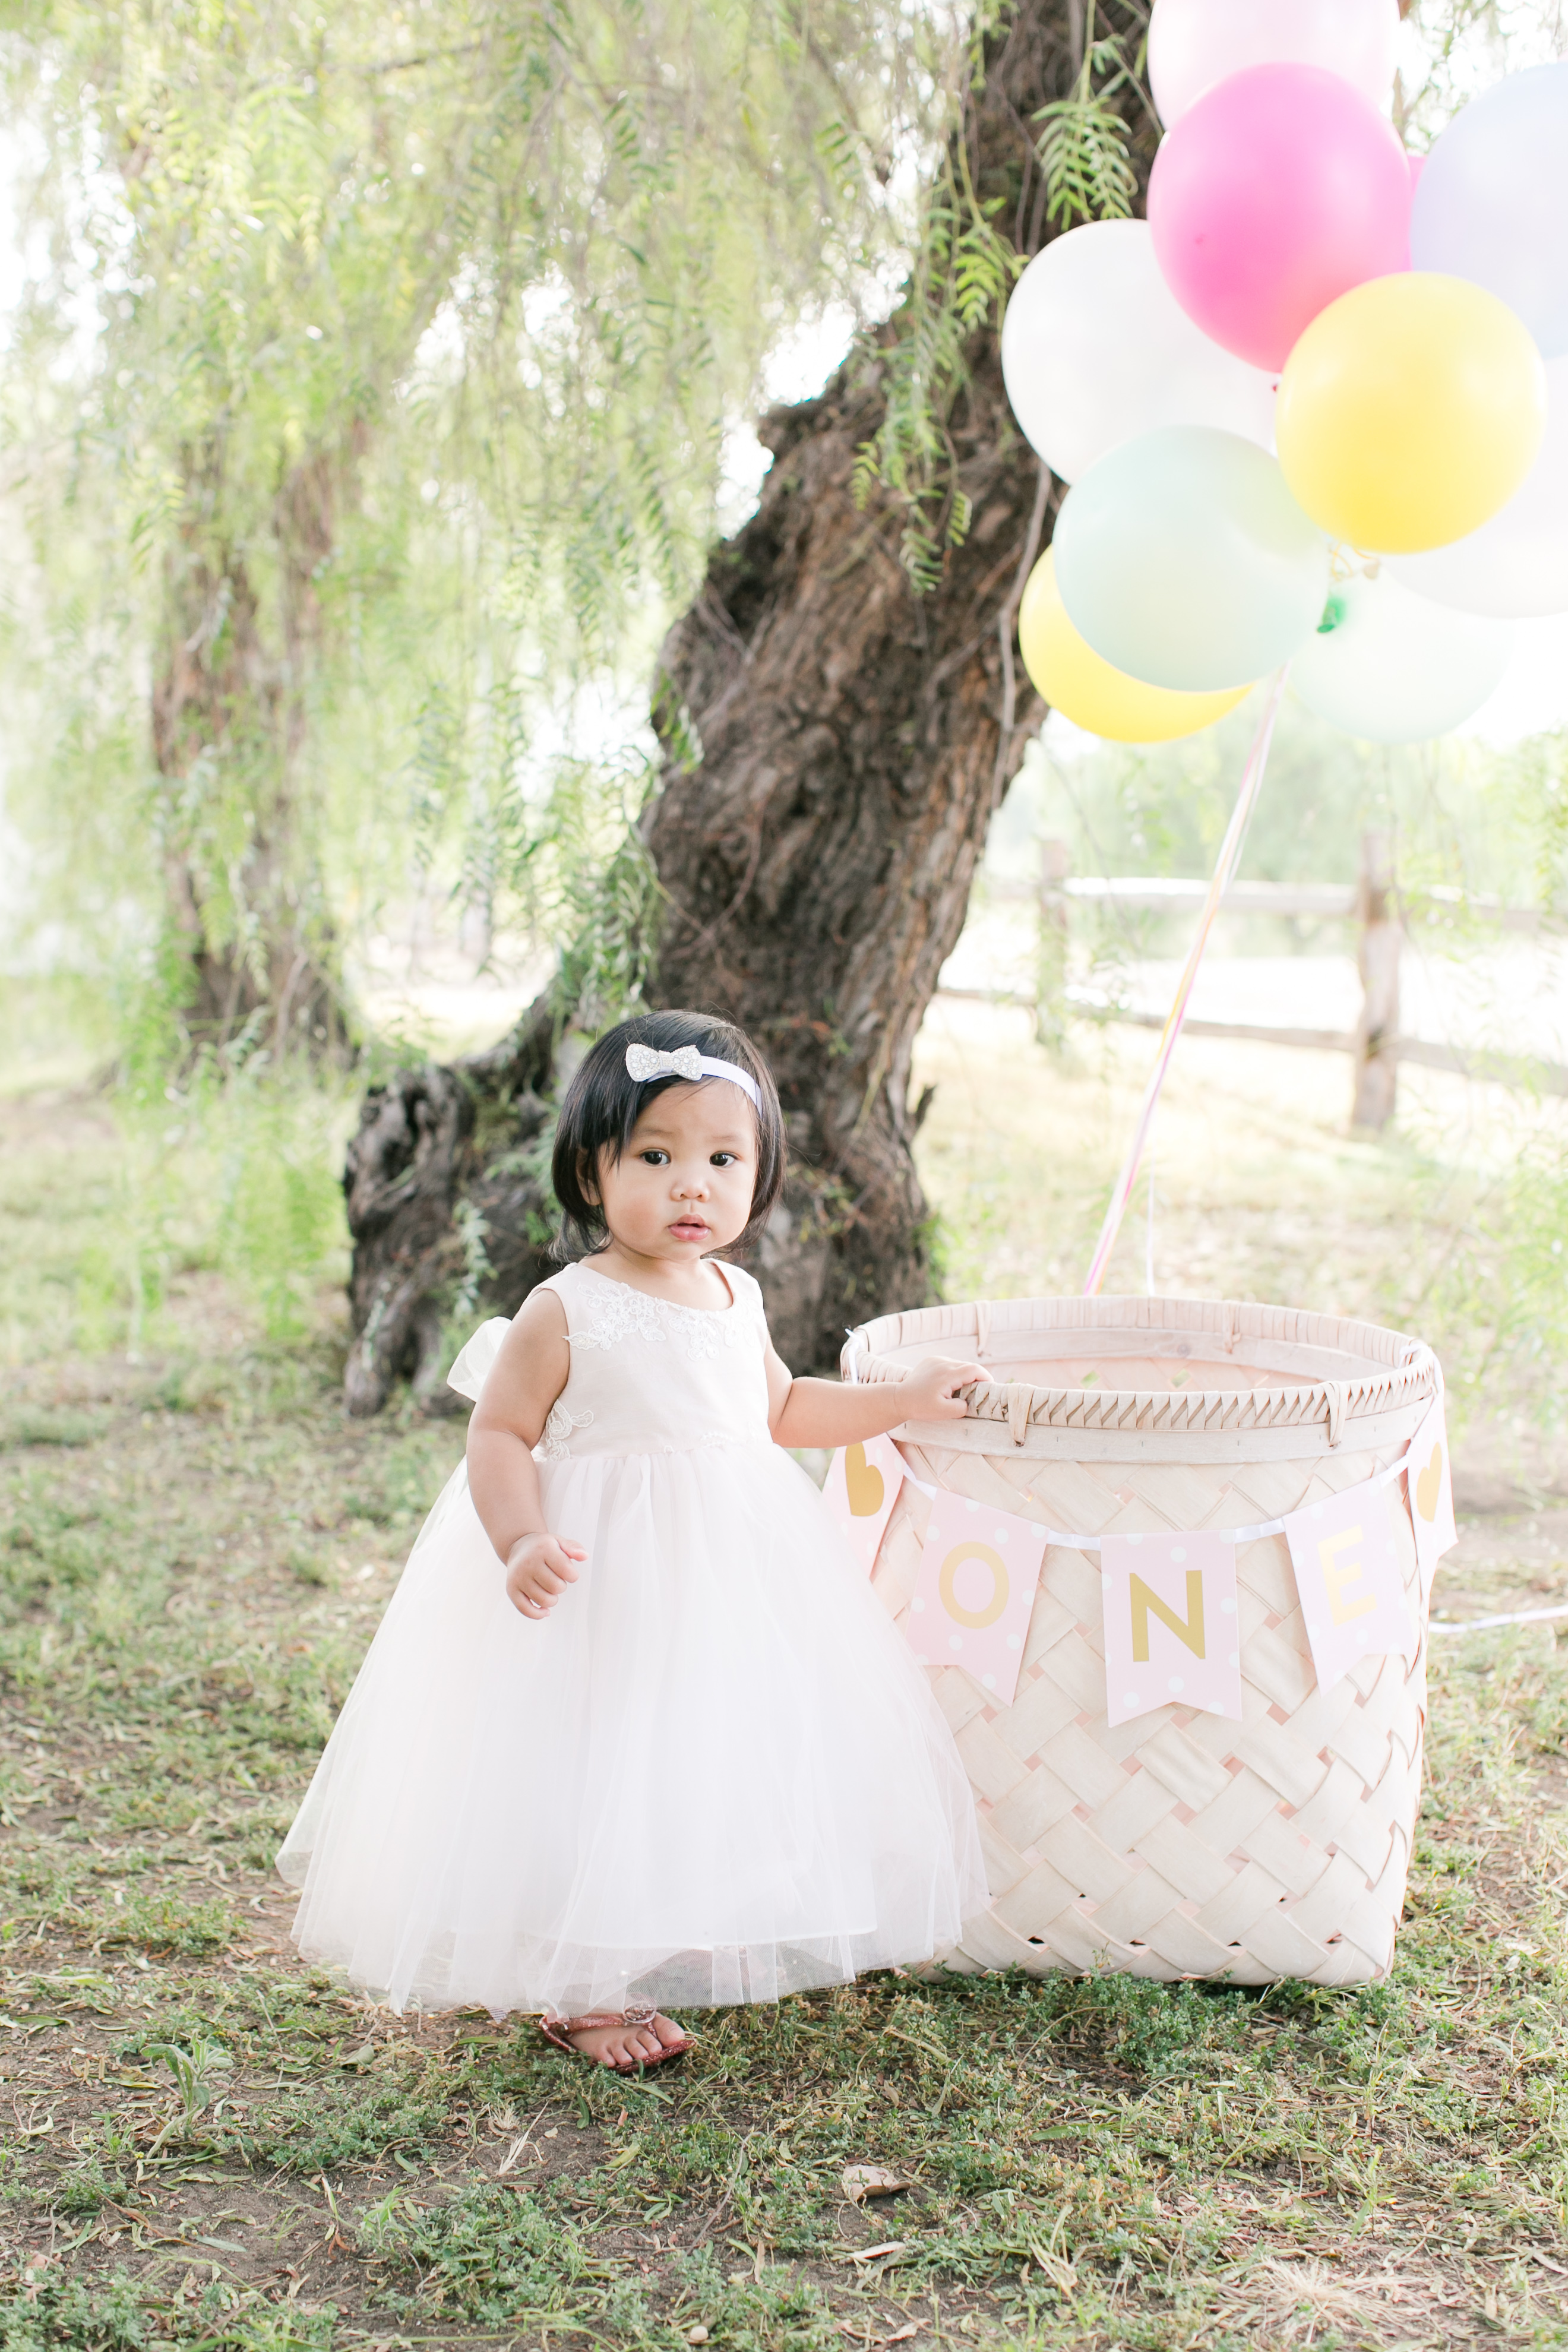 NEMA Photography J.Pham053 - Baby Justine // One year old portraits